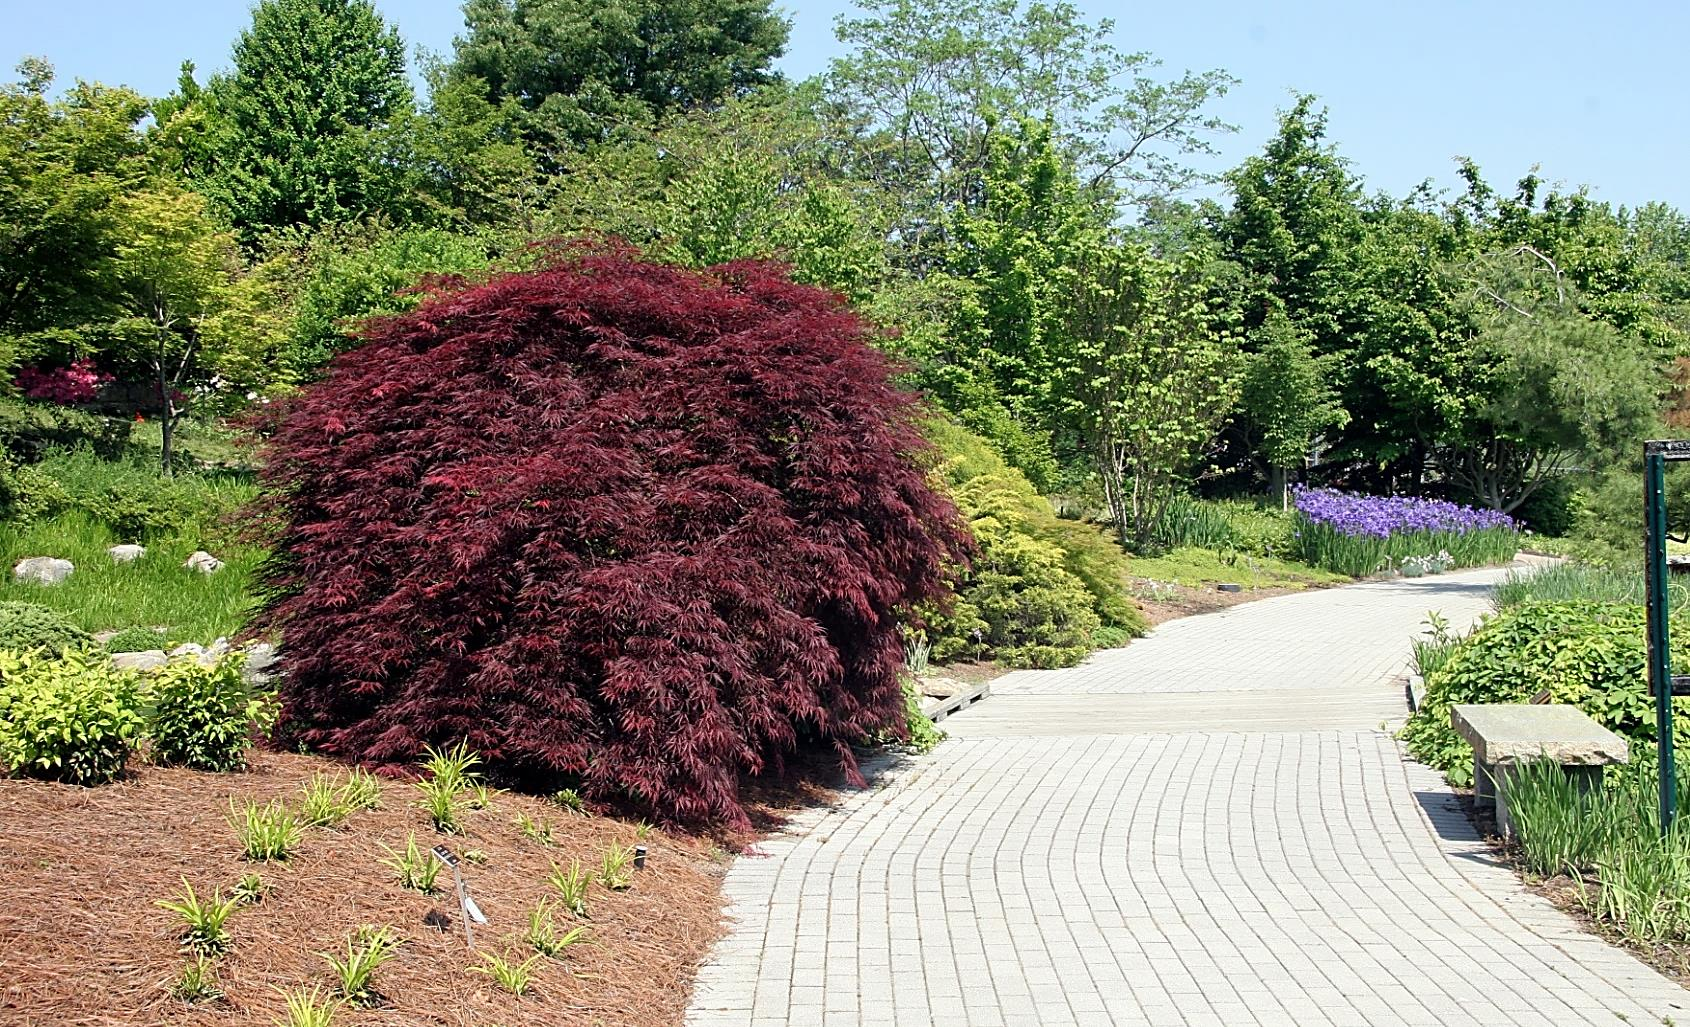 Acer palmatum Japanese Maple Purple foliage color can be difficult to incorporate in the landscape, because we expect